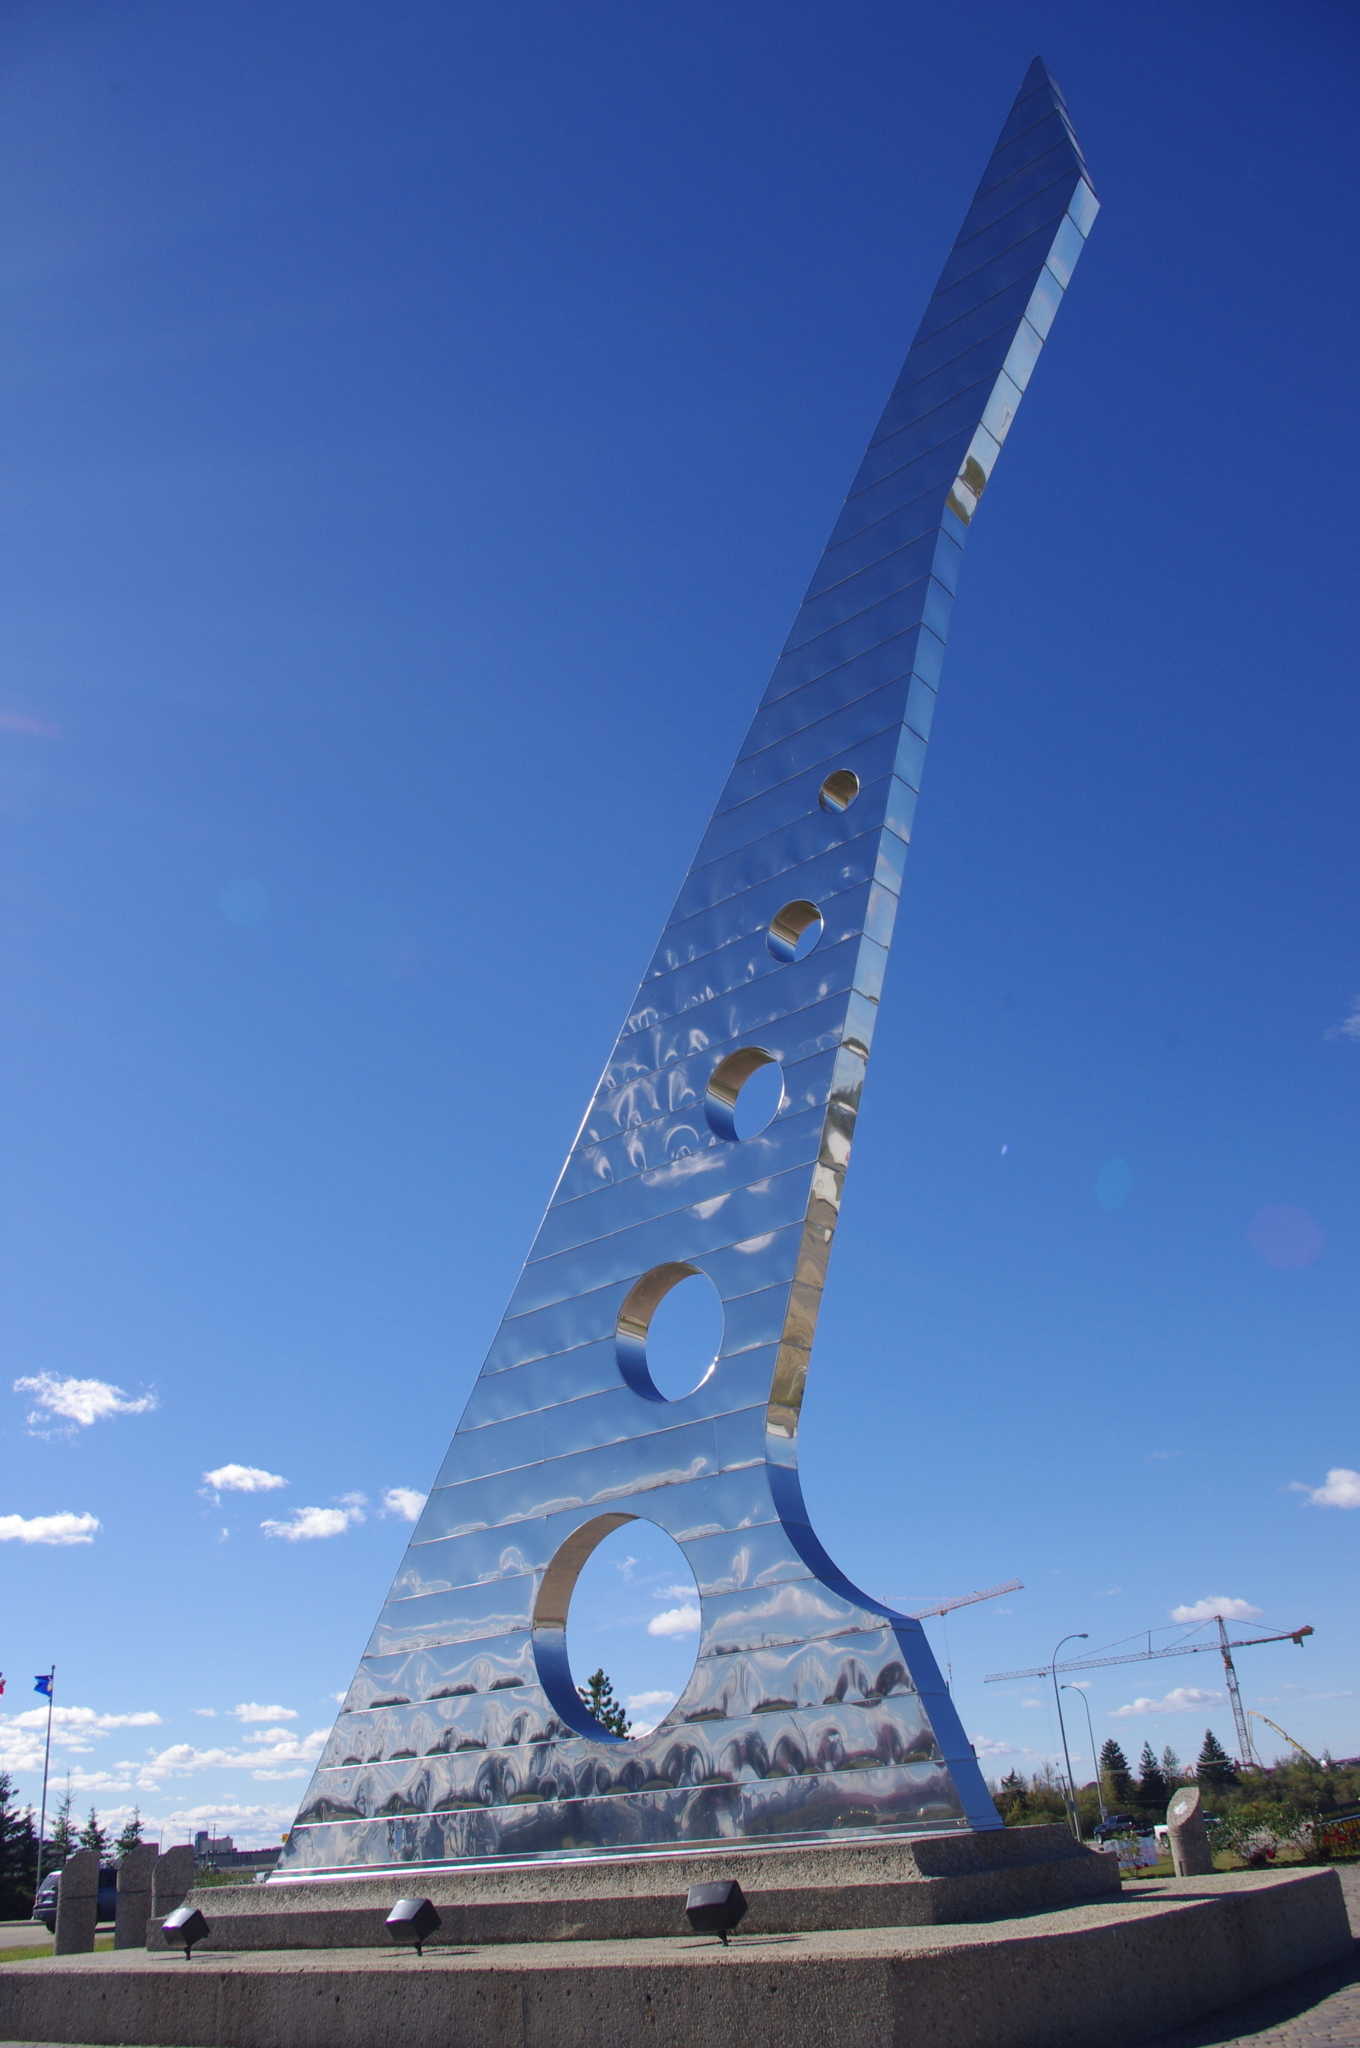 LSM-Lee's Sheet Metal Ltd in Grande Prairie: Sundial at Centre 2000 - LSM Custom Manufacturing and Fabrication.